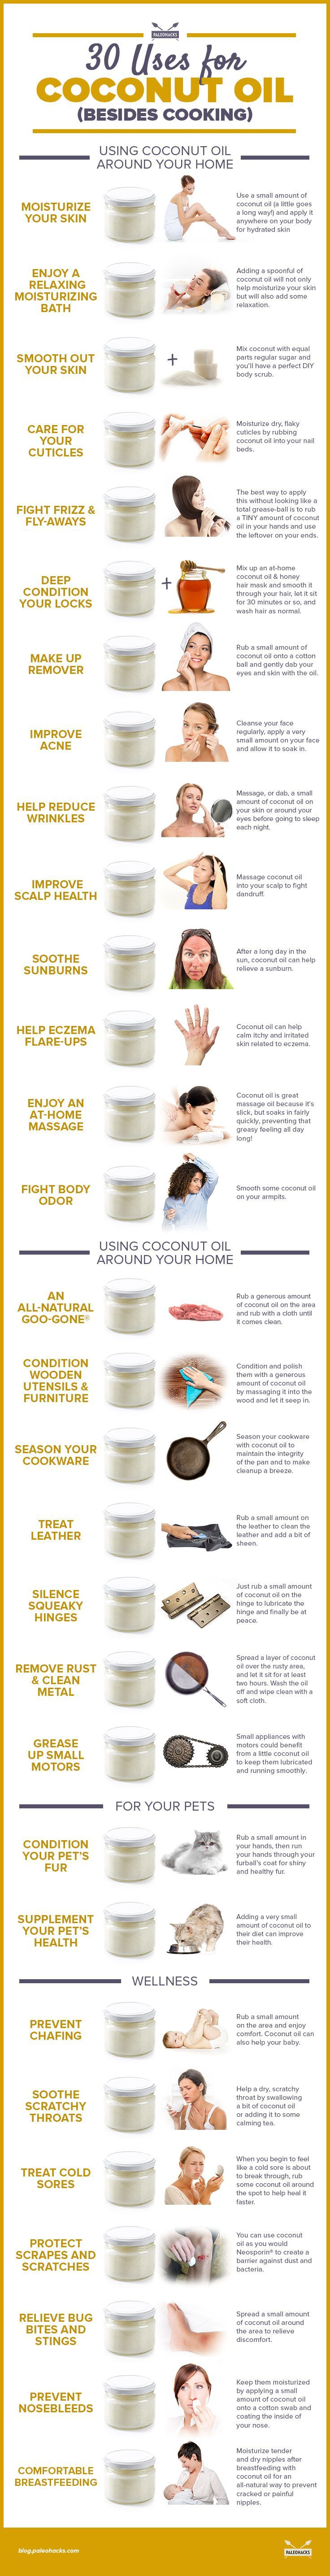 30 uses for coconut oil that don't involve cooking! Did you know that coconut oil is also great for cleaning?! Or that it's a fantastic beauty product?